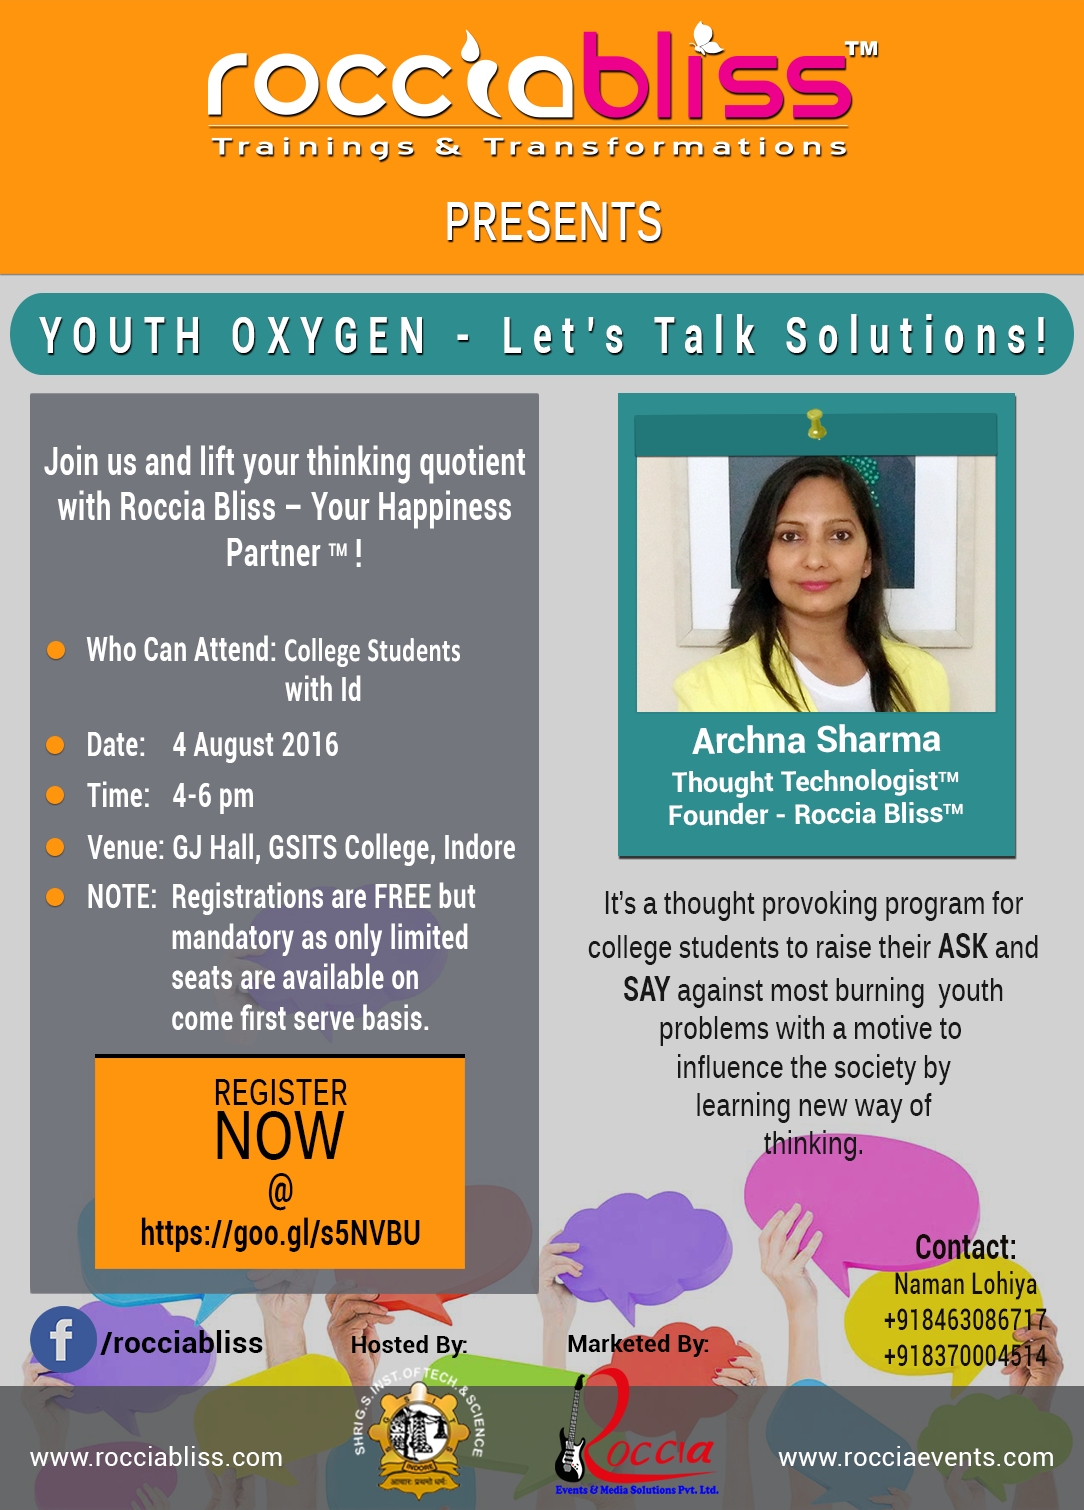 YOUTH OXYGEN - Let's Talk Solutions!